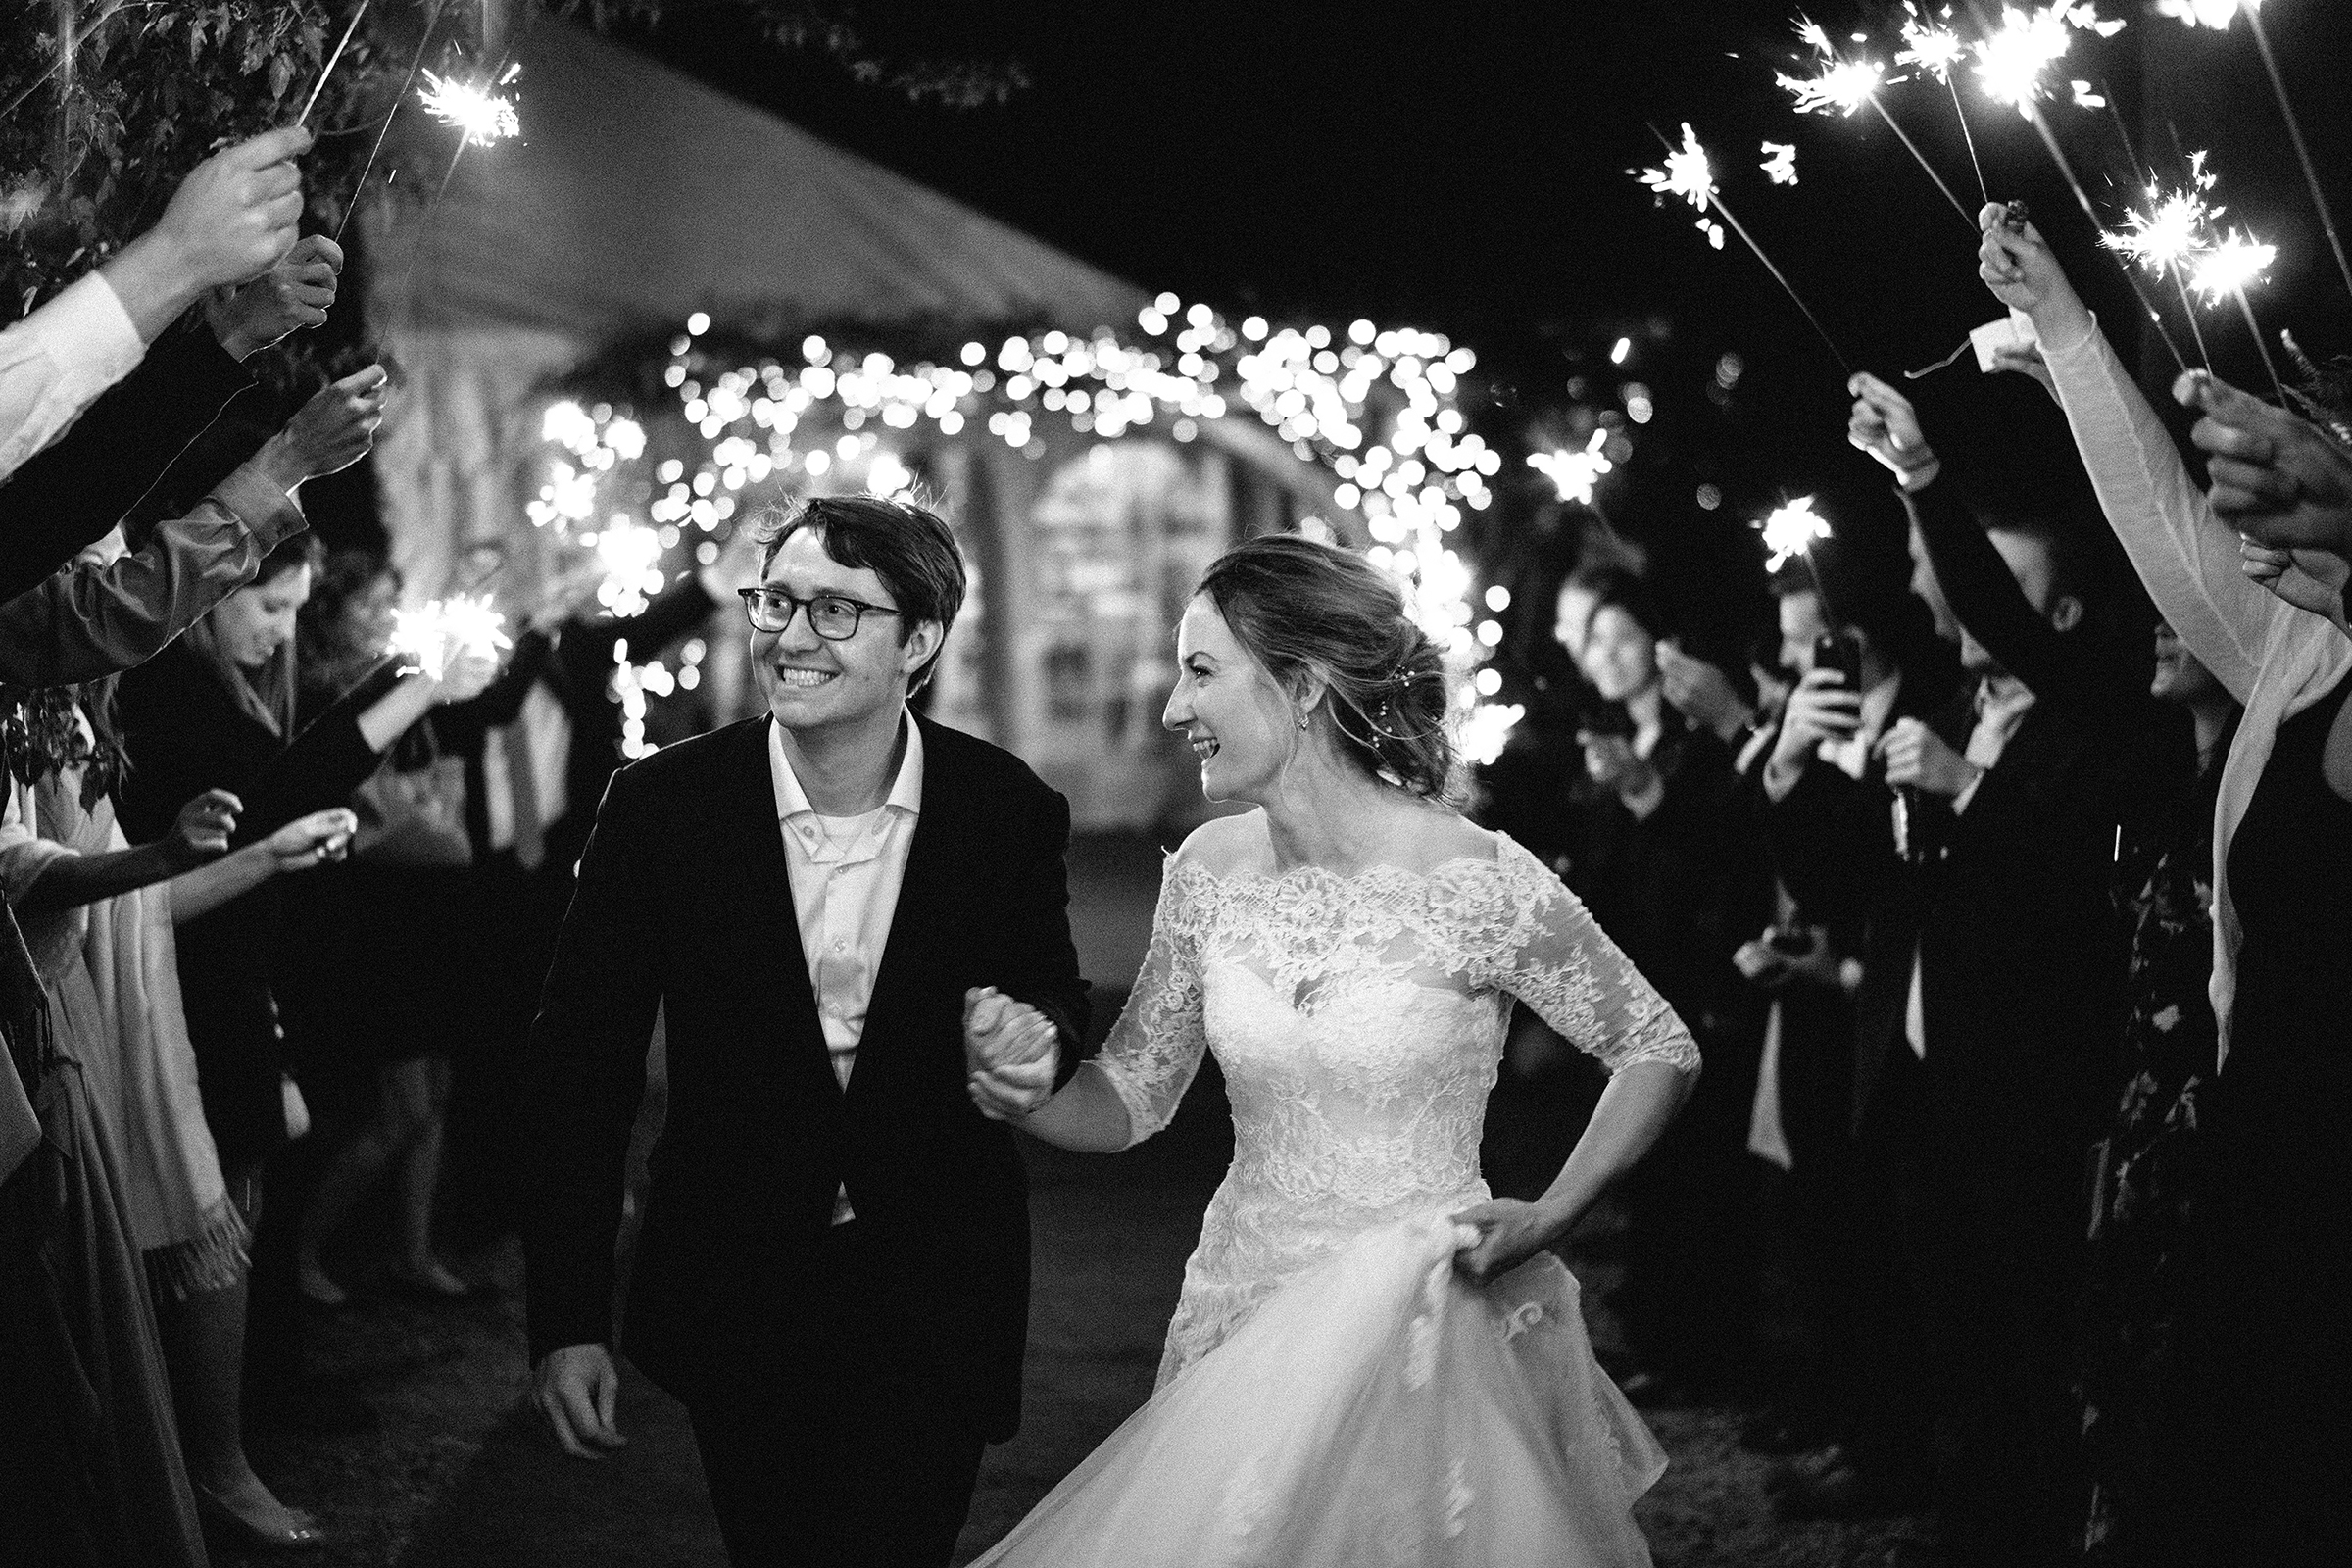 Couple exit under sparklers - photo by Bradley Hanson Photography